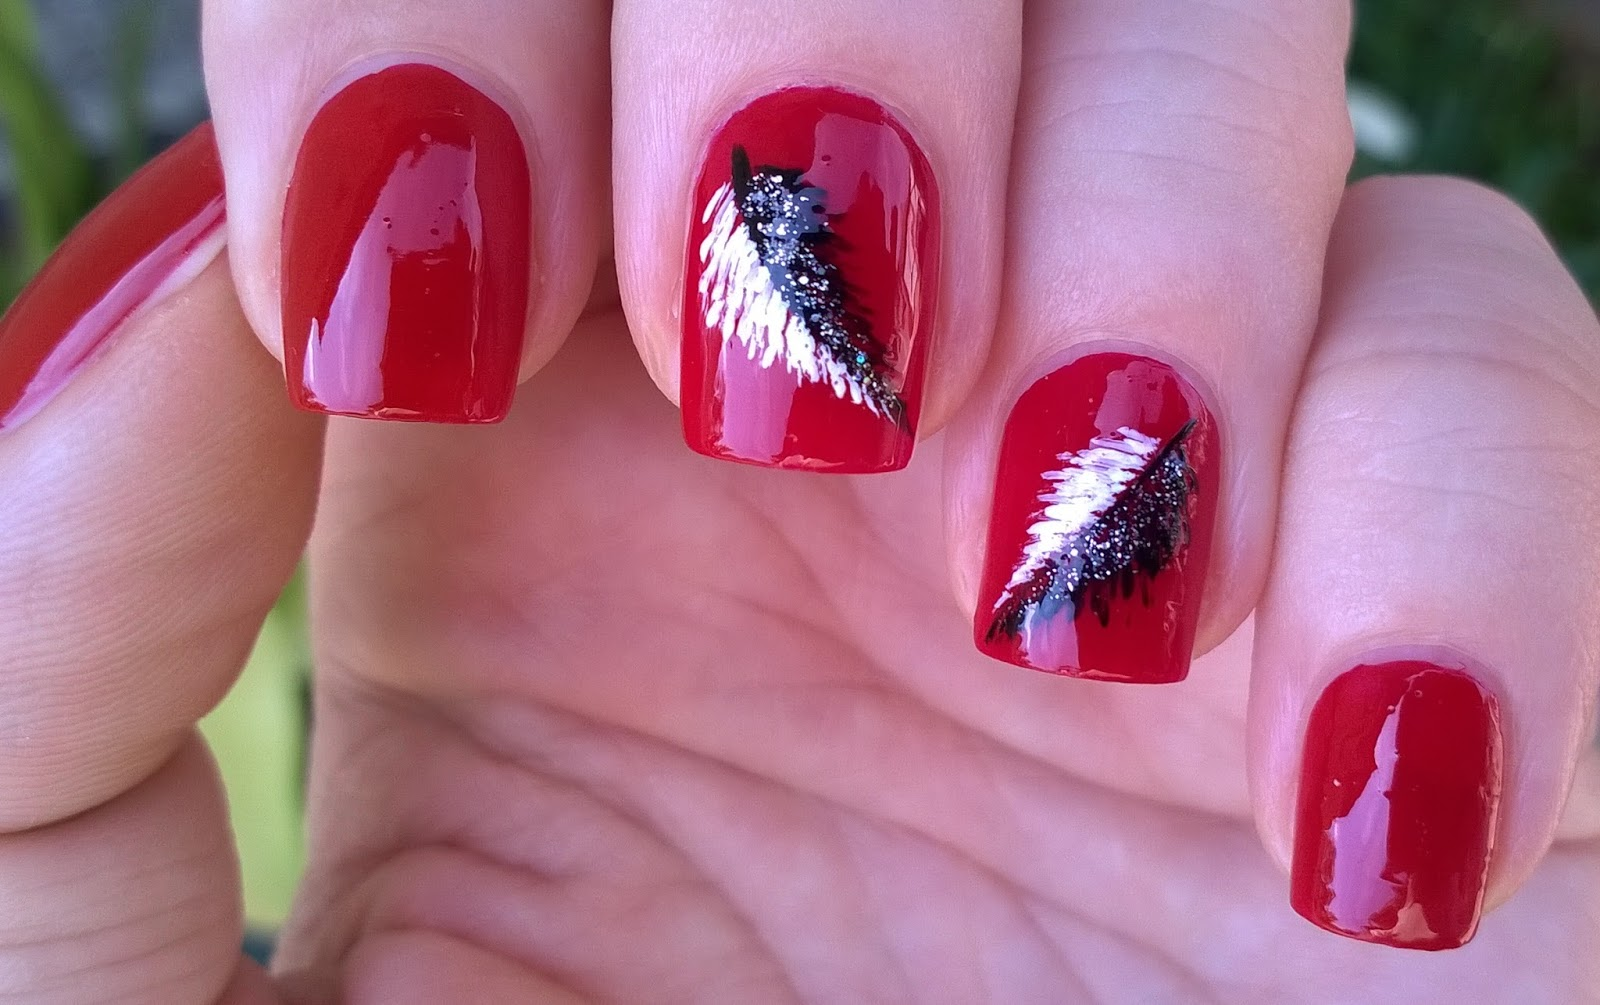 Life World Women: Elegant Red Nails With Feather Nail Design